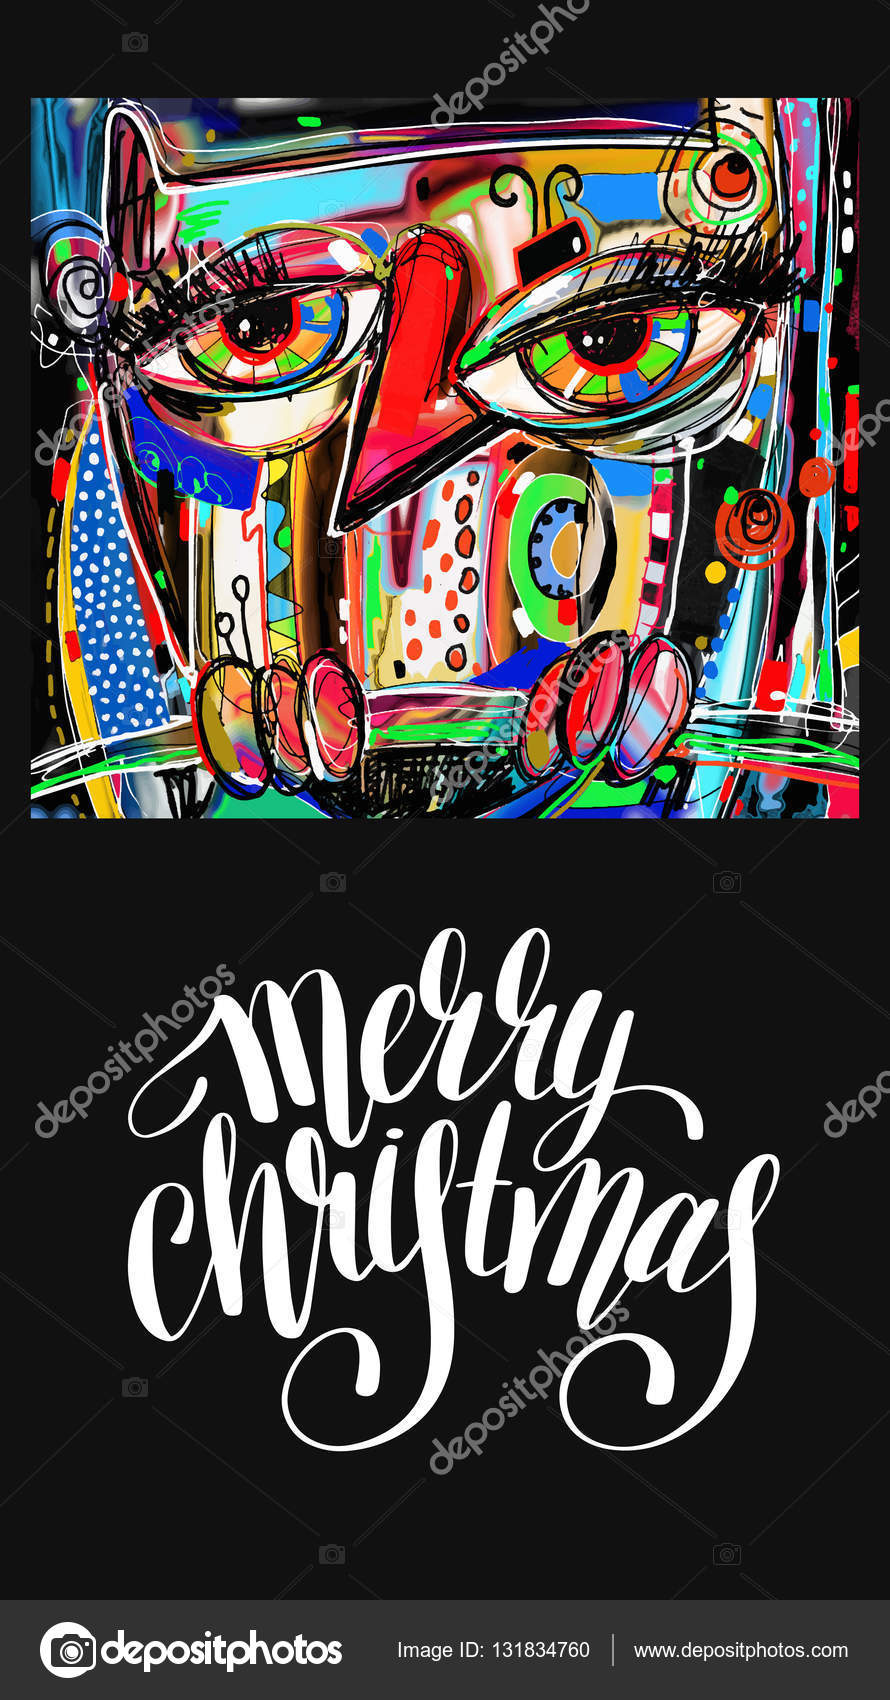 digitala gratulationskort Christmas gratulationskort med digital målning konstverk av doodle  digitala gratulationskort